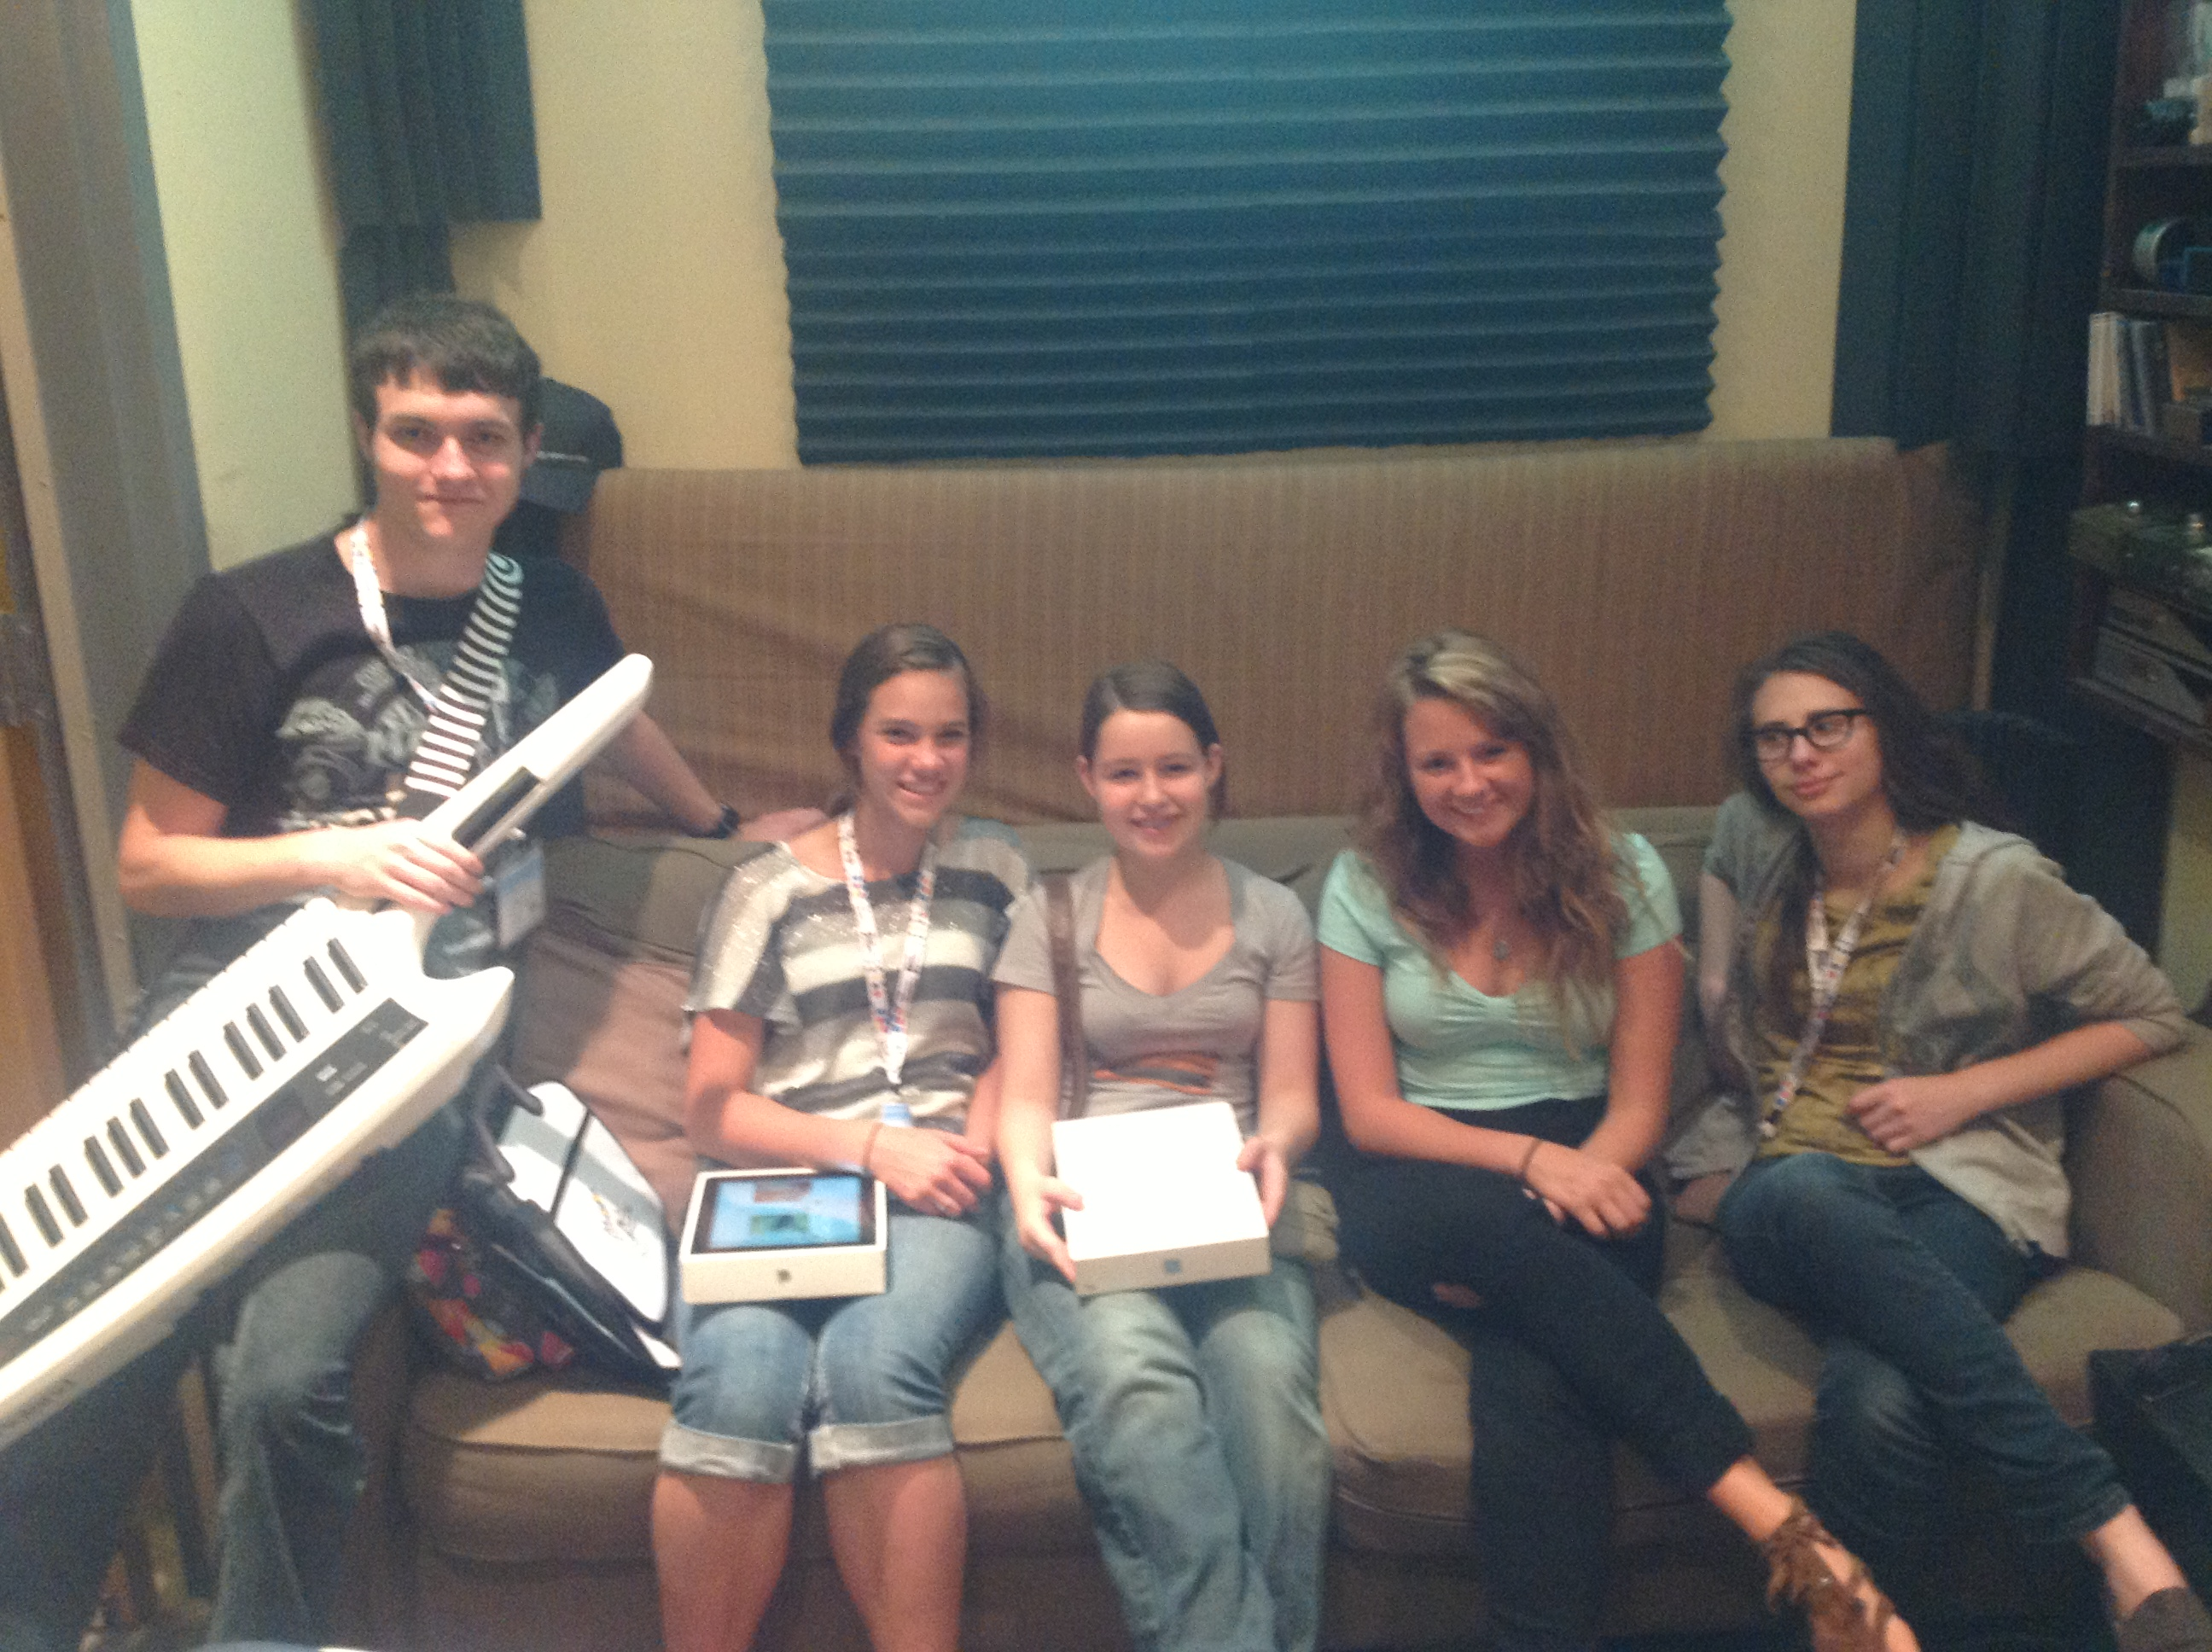 GRAMMY students waiting to record